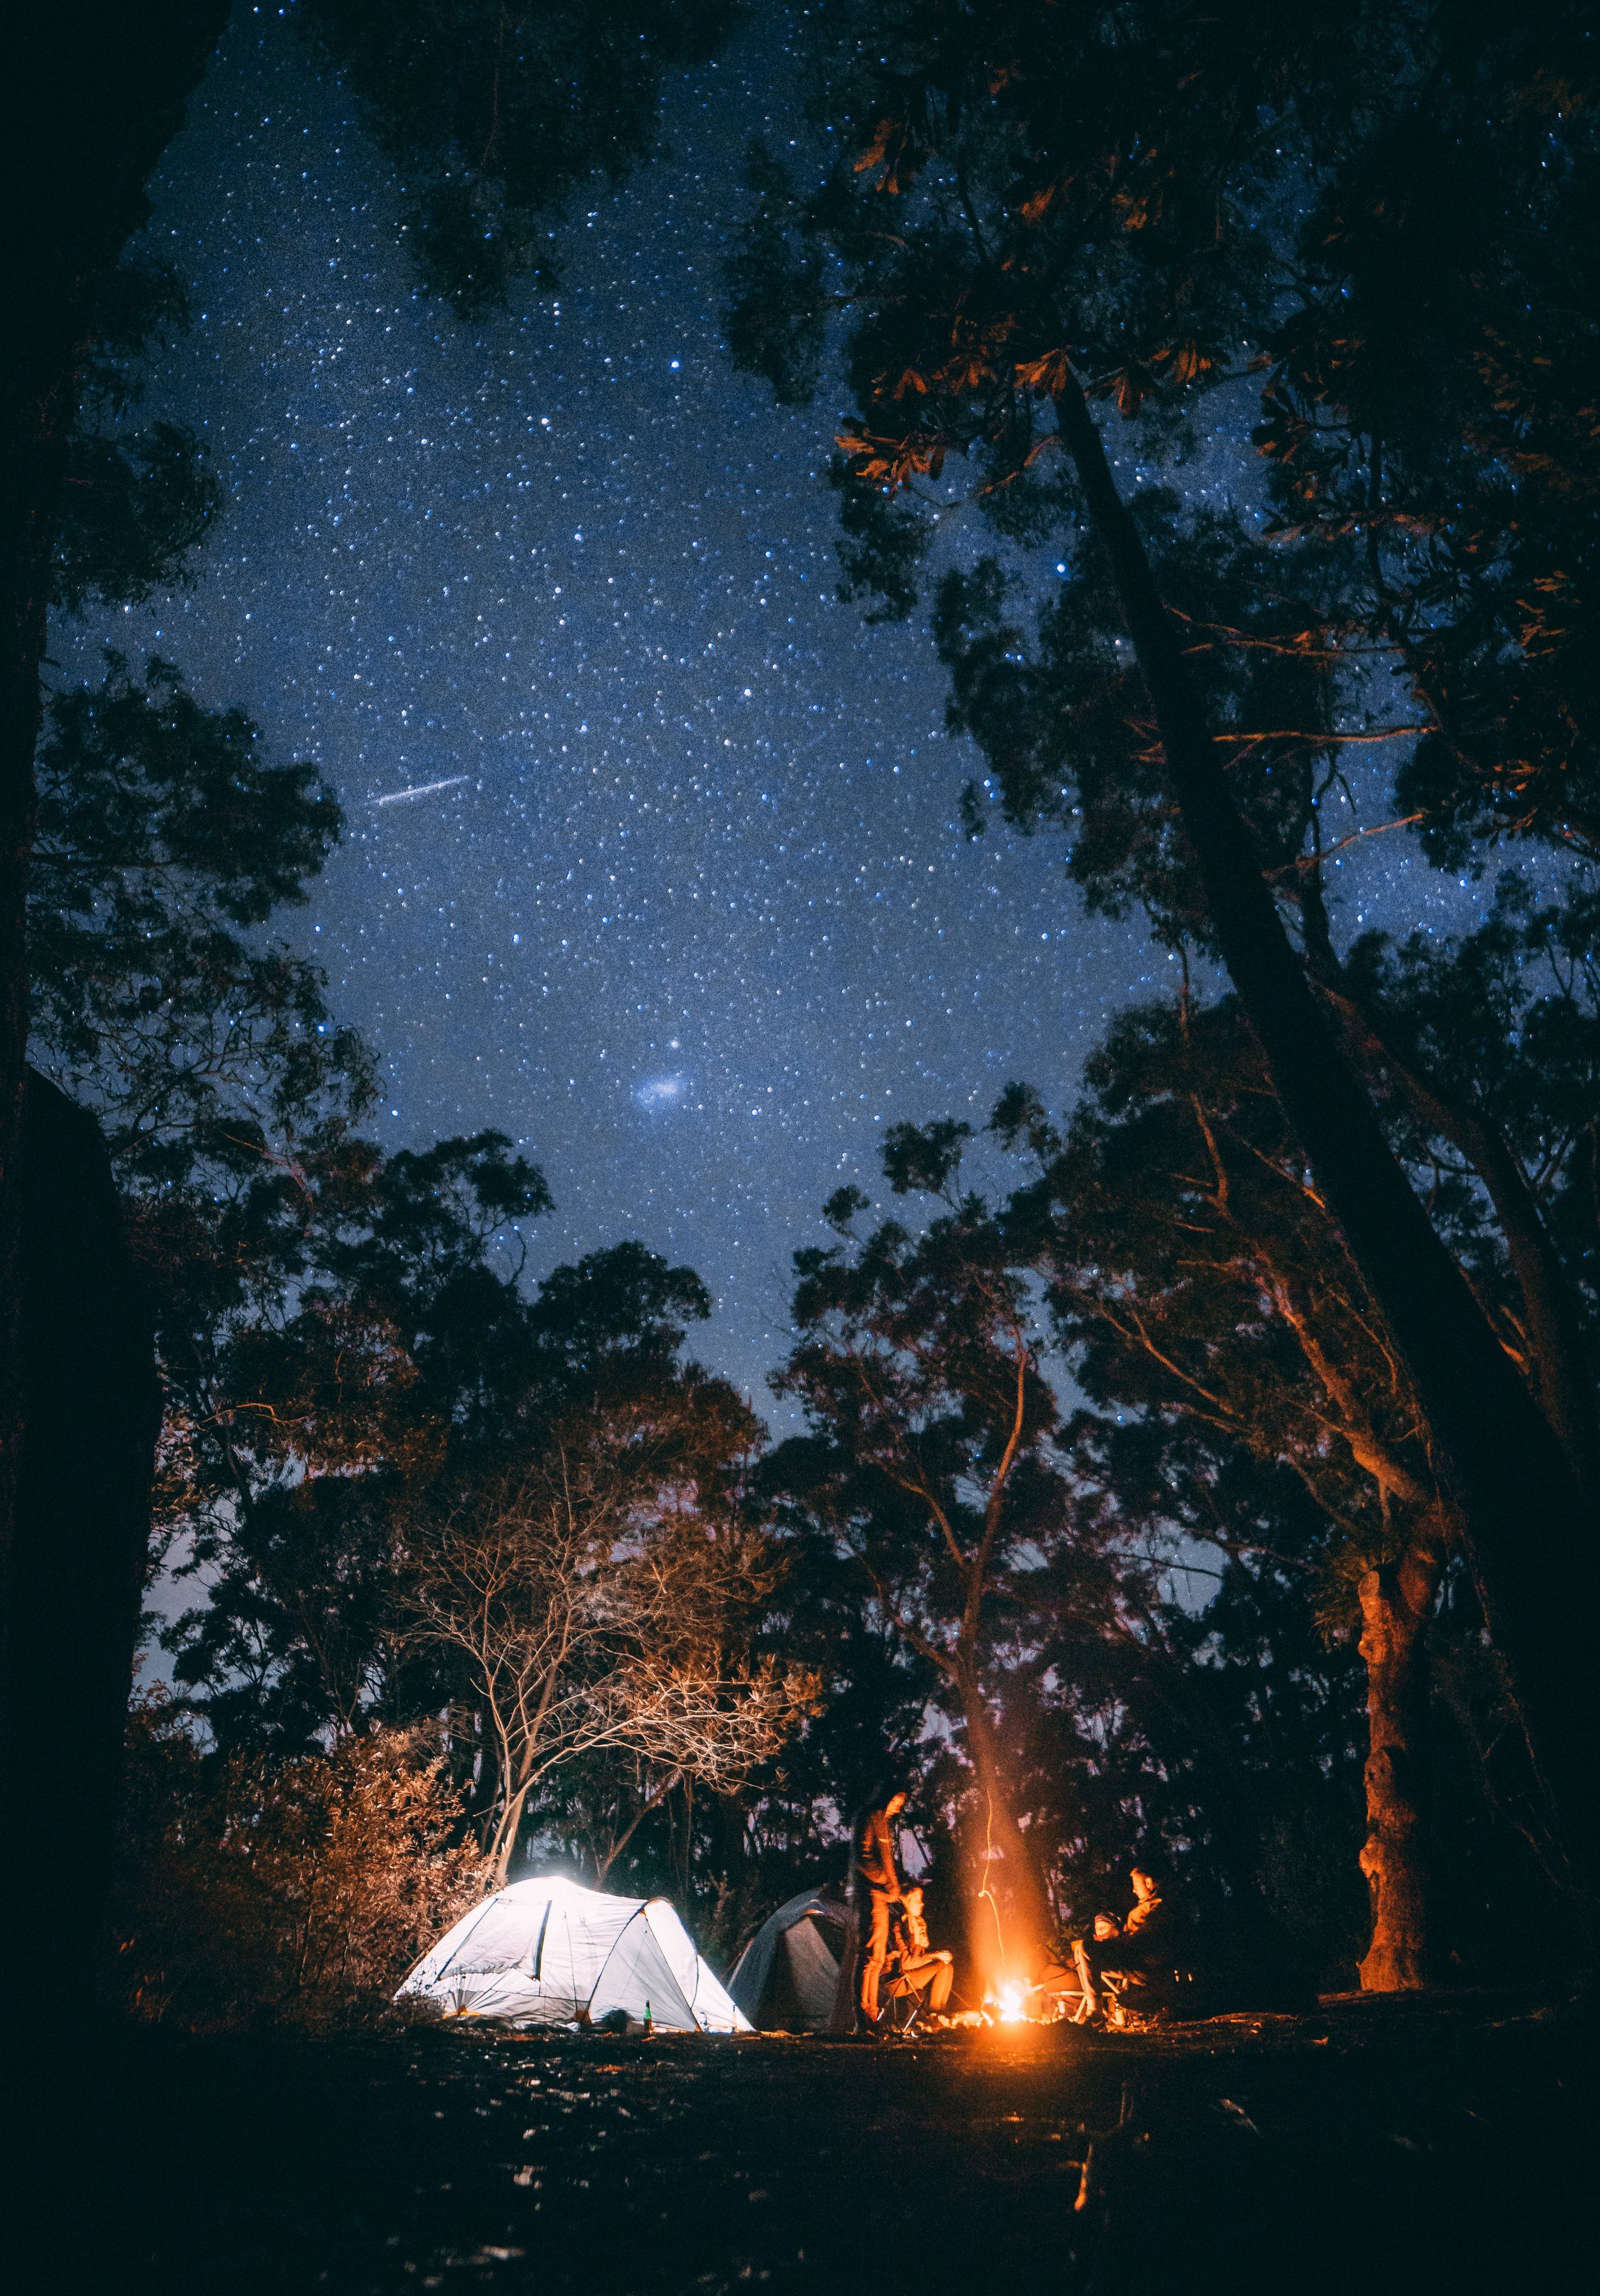 campsite set up under the stars in the forest